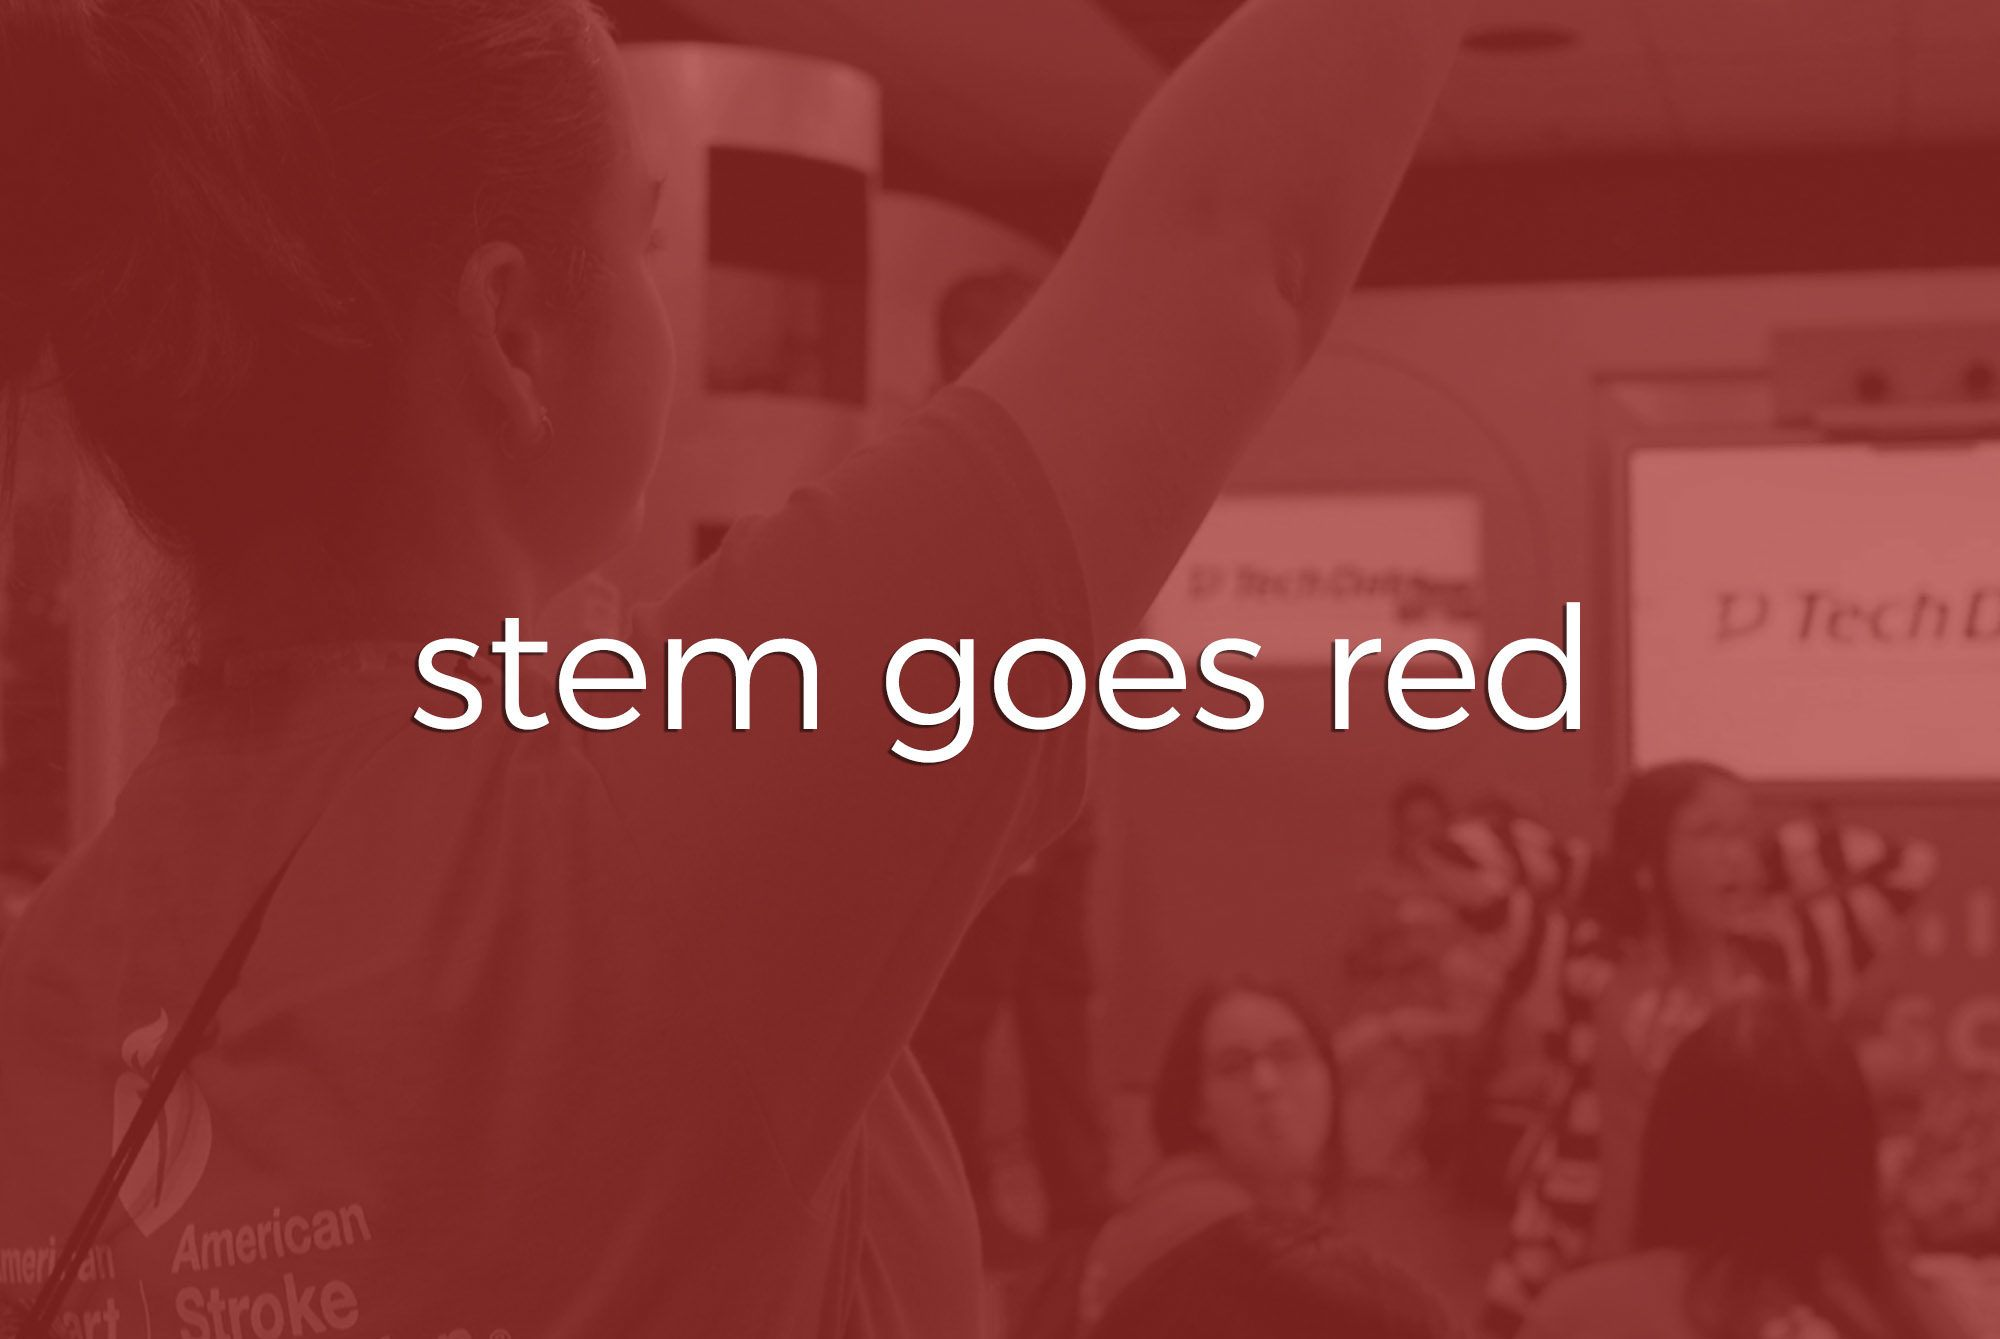 Event Videography | Tampa | AHA Stem Goes Red